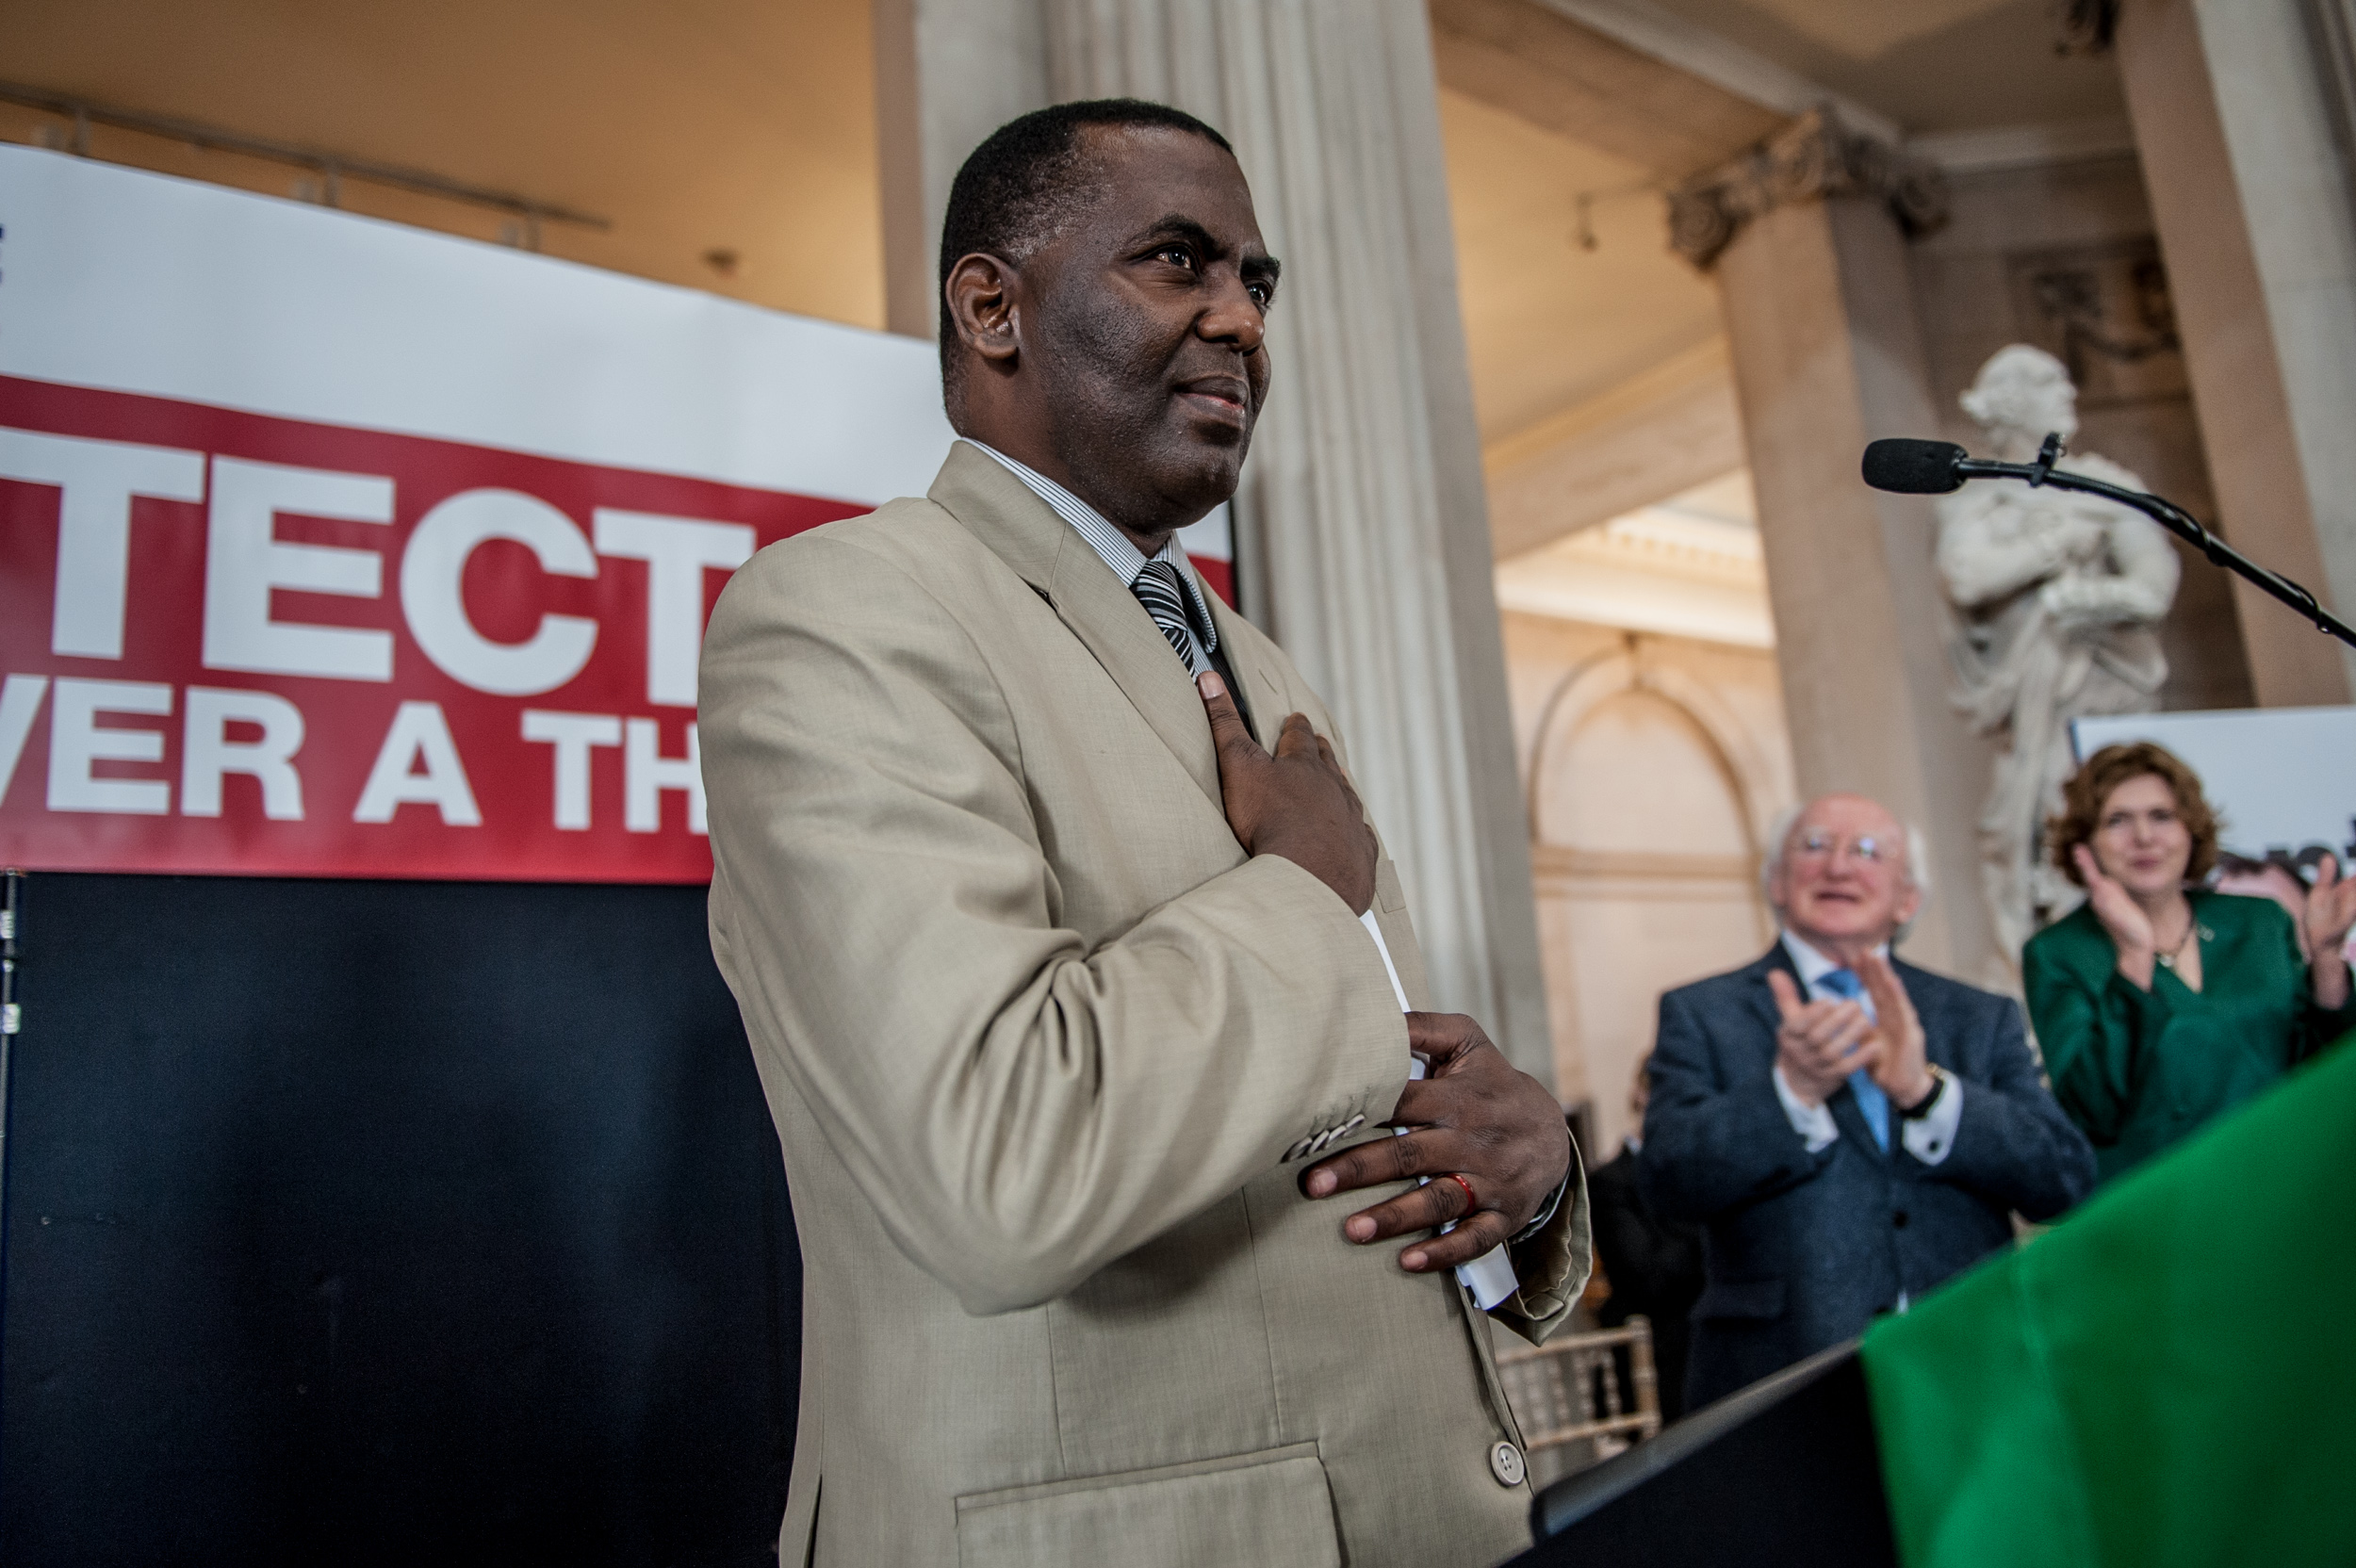 Biram Dah Abeid receiving 2013 Front Line Defenders Award